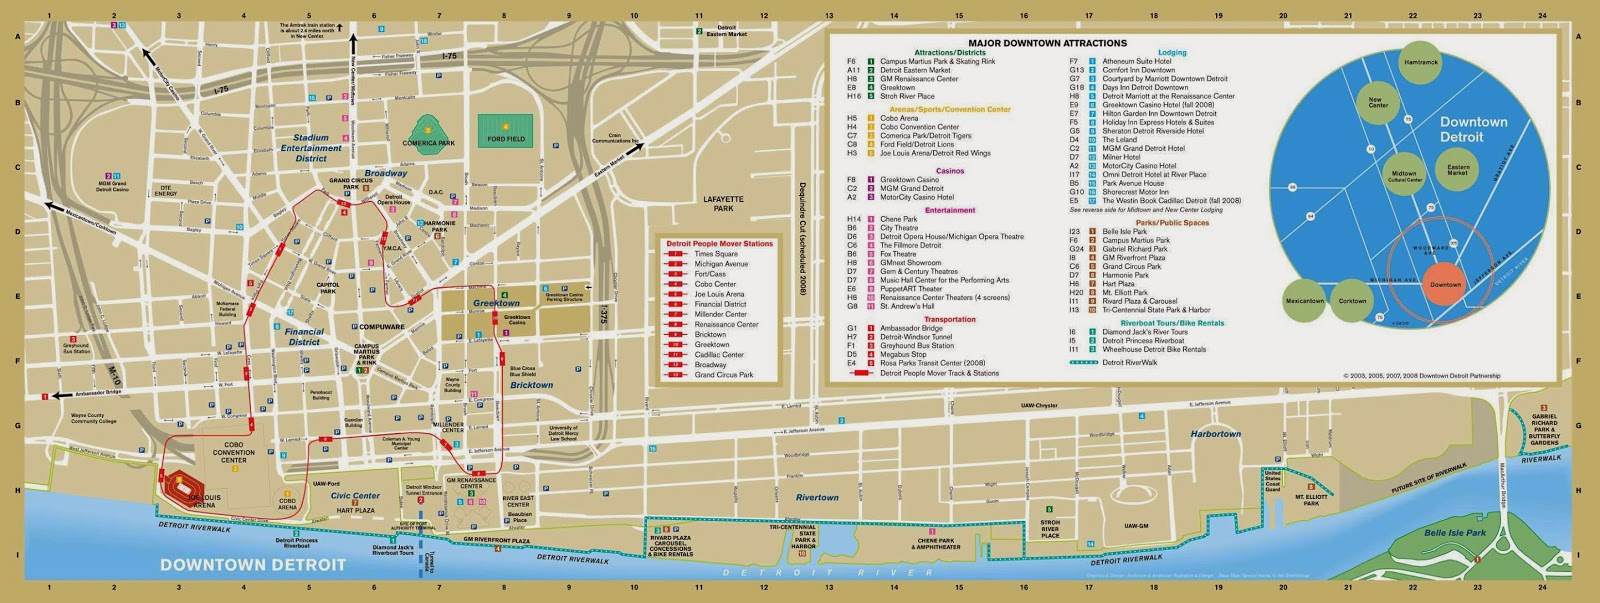 City Of Detroit Downtown Map Free Printable Maps – Tourist Attractions Map In Detroit